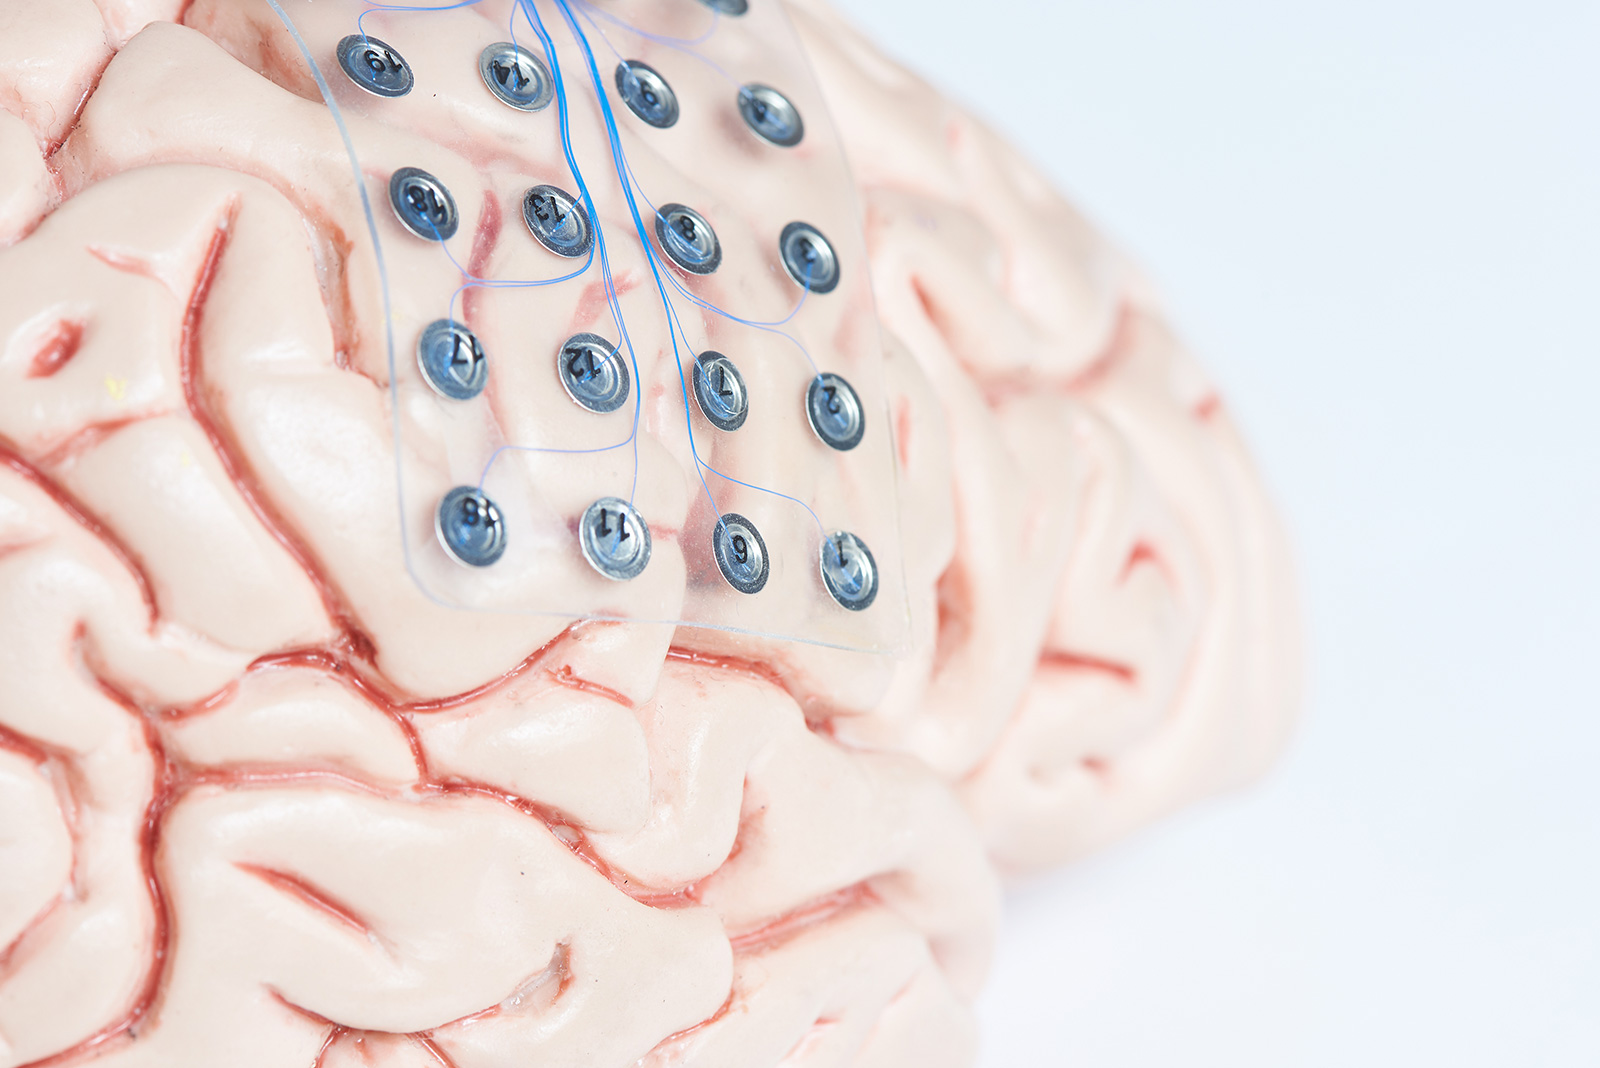 A human brain with electrodes